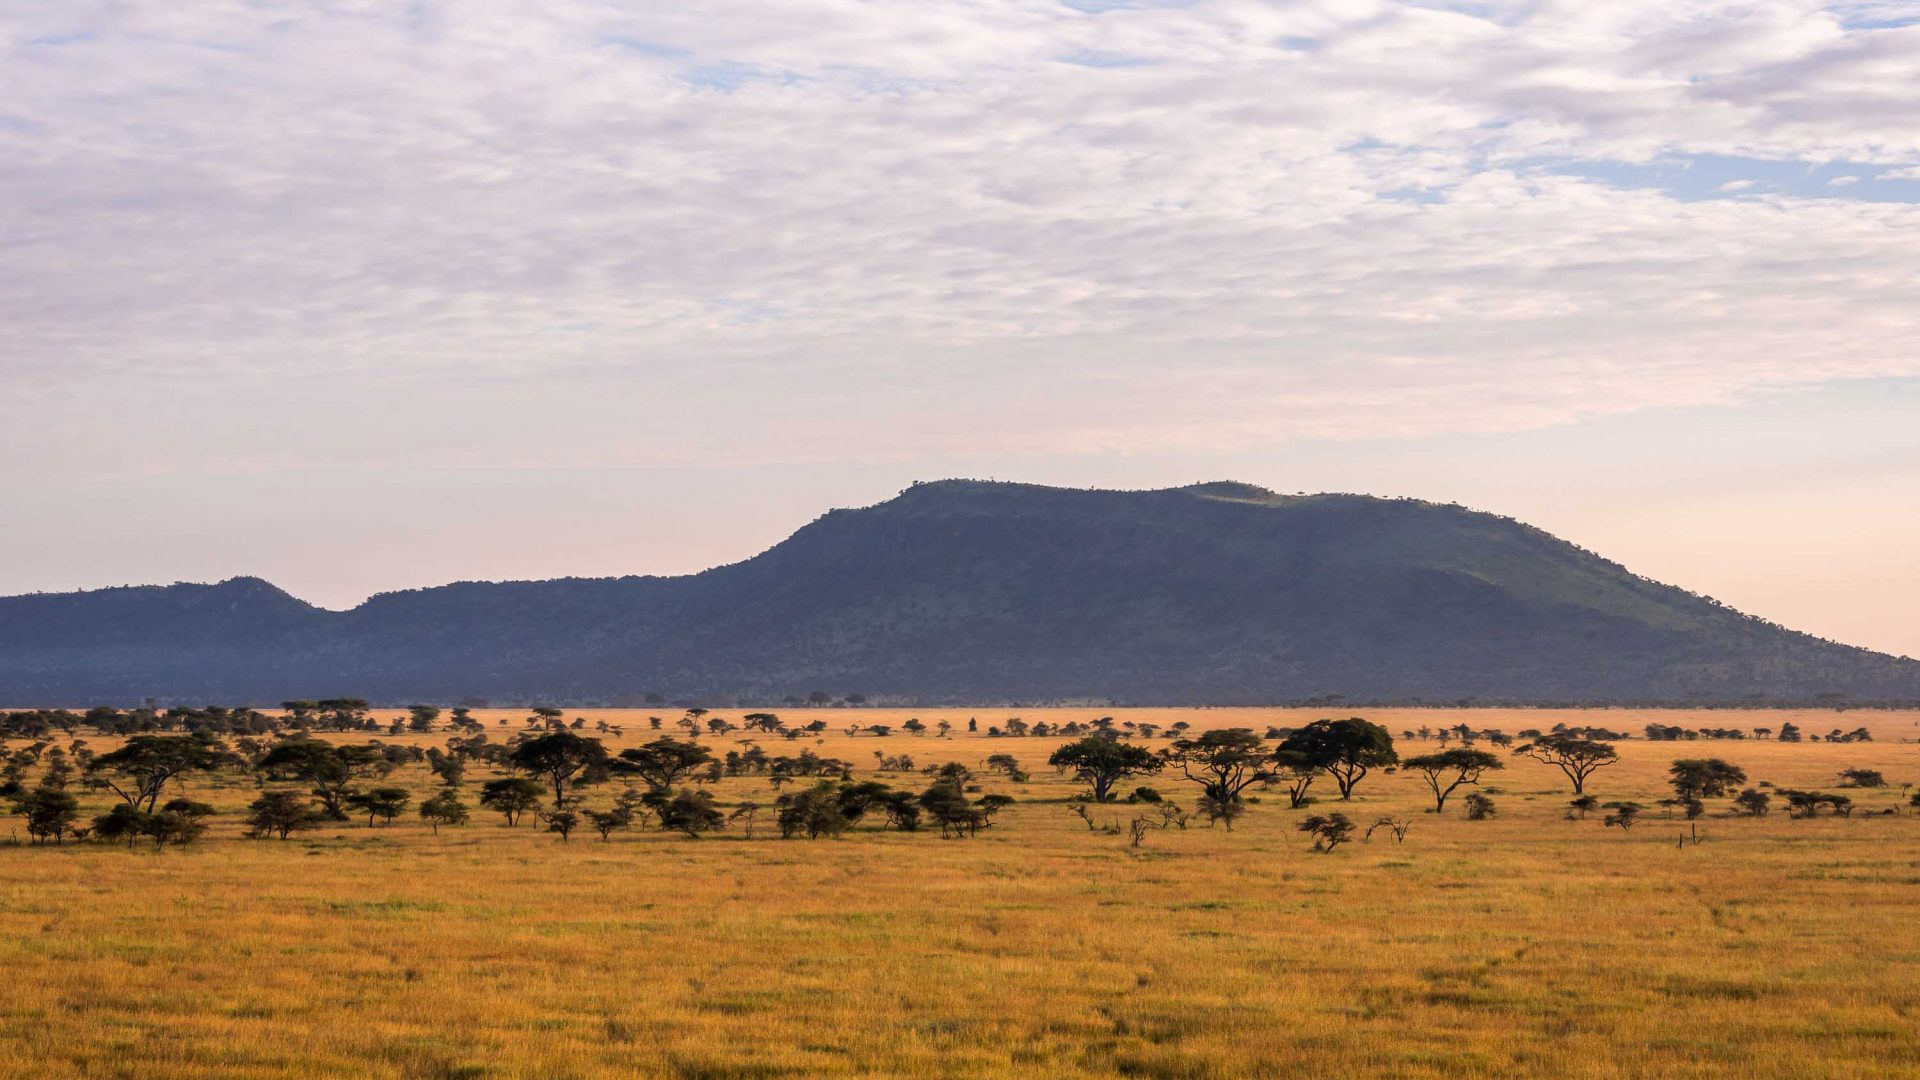 The vast plains of the Serengeti, Tanzania, at dawn.